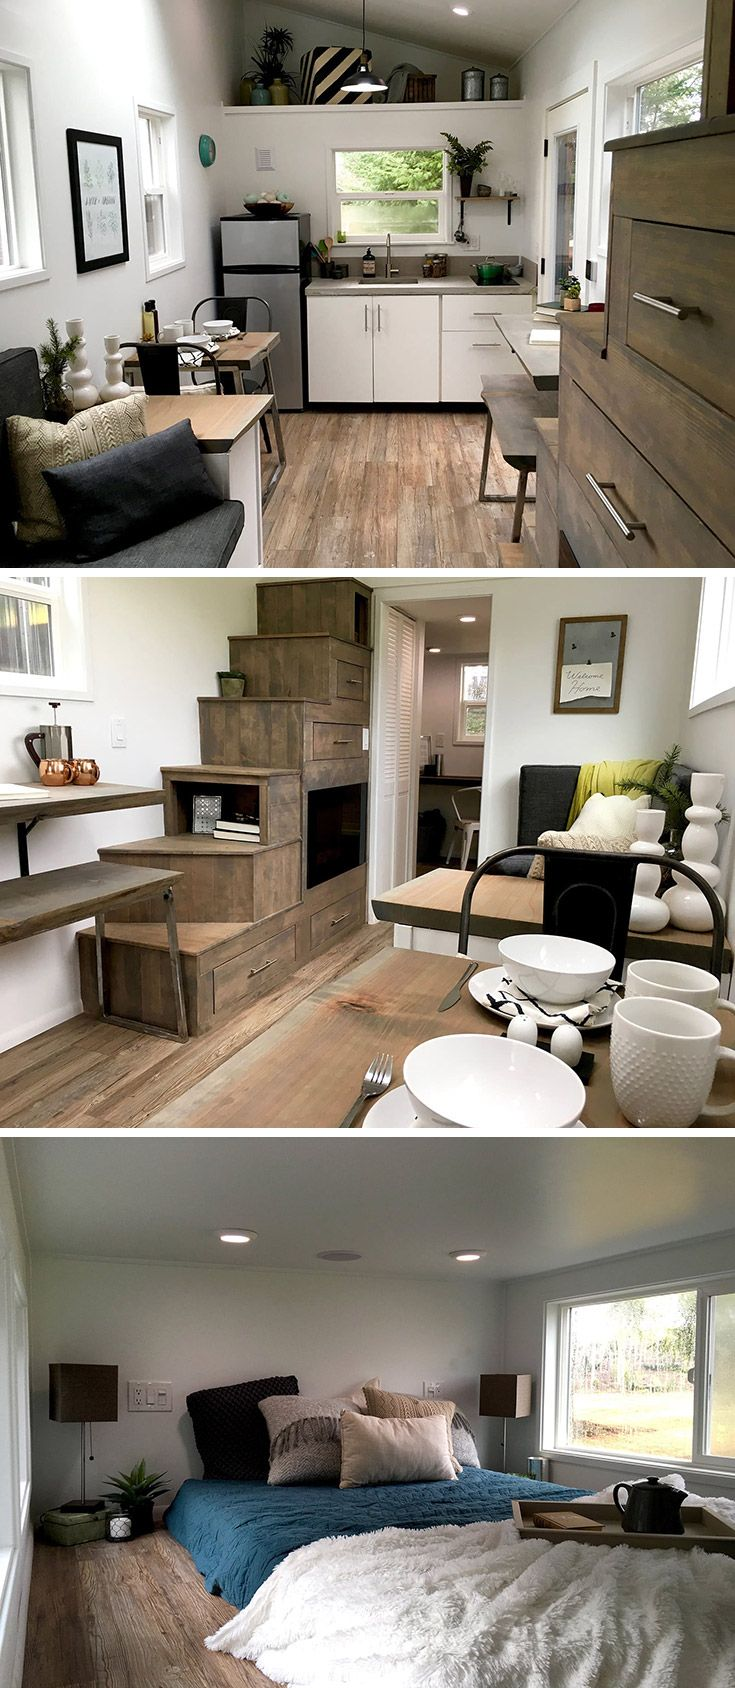 940 best images about cozy home stuff on pinterest tiny homes on